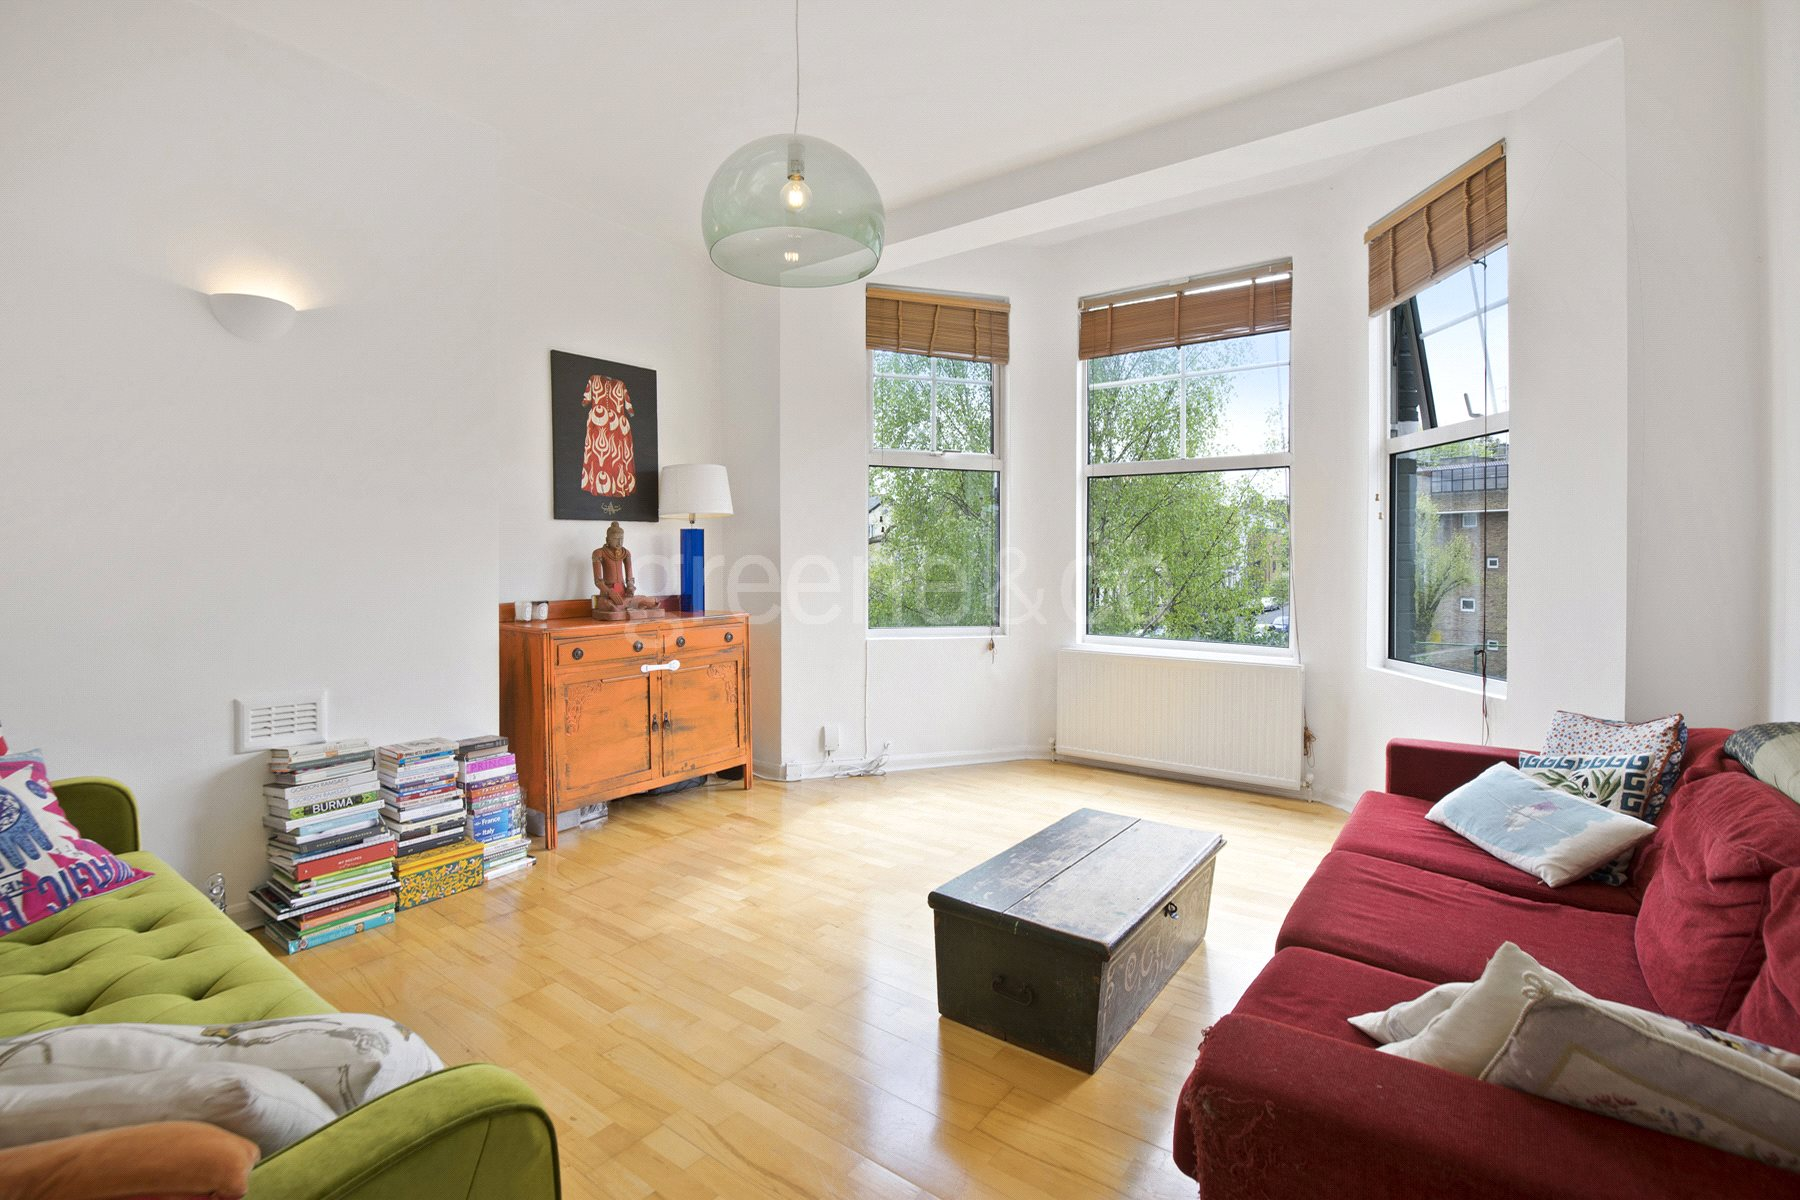 2 Bedrooms Flat for sale in Hornsey Rise, Crouch End, London, N19